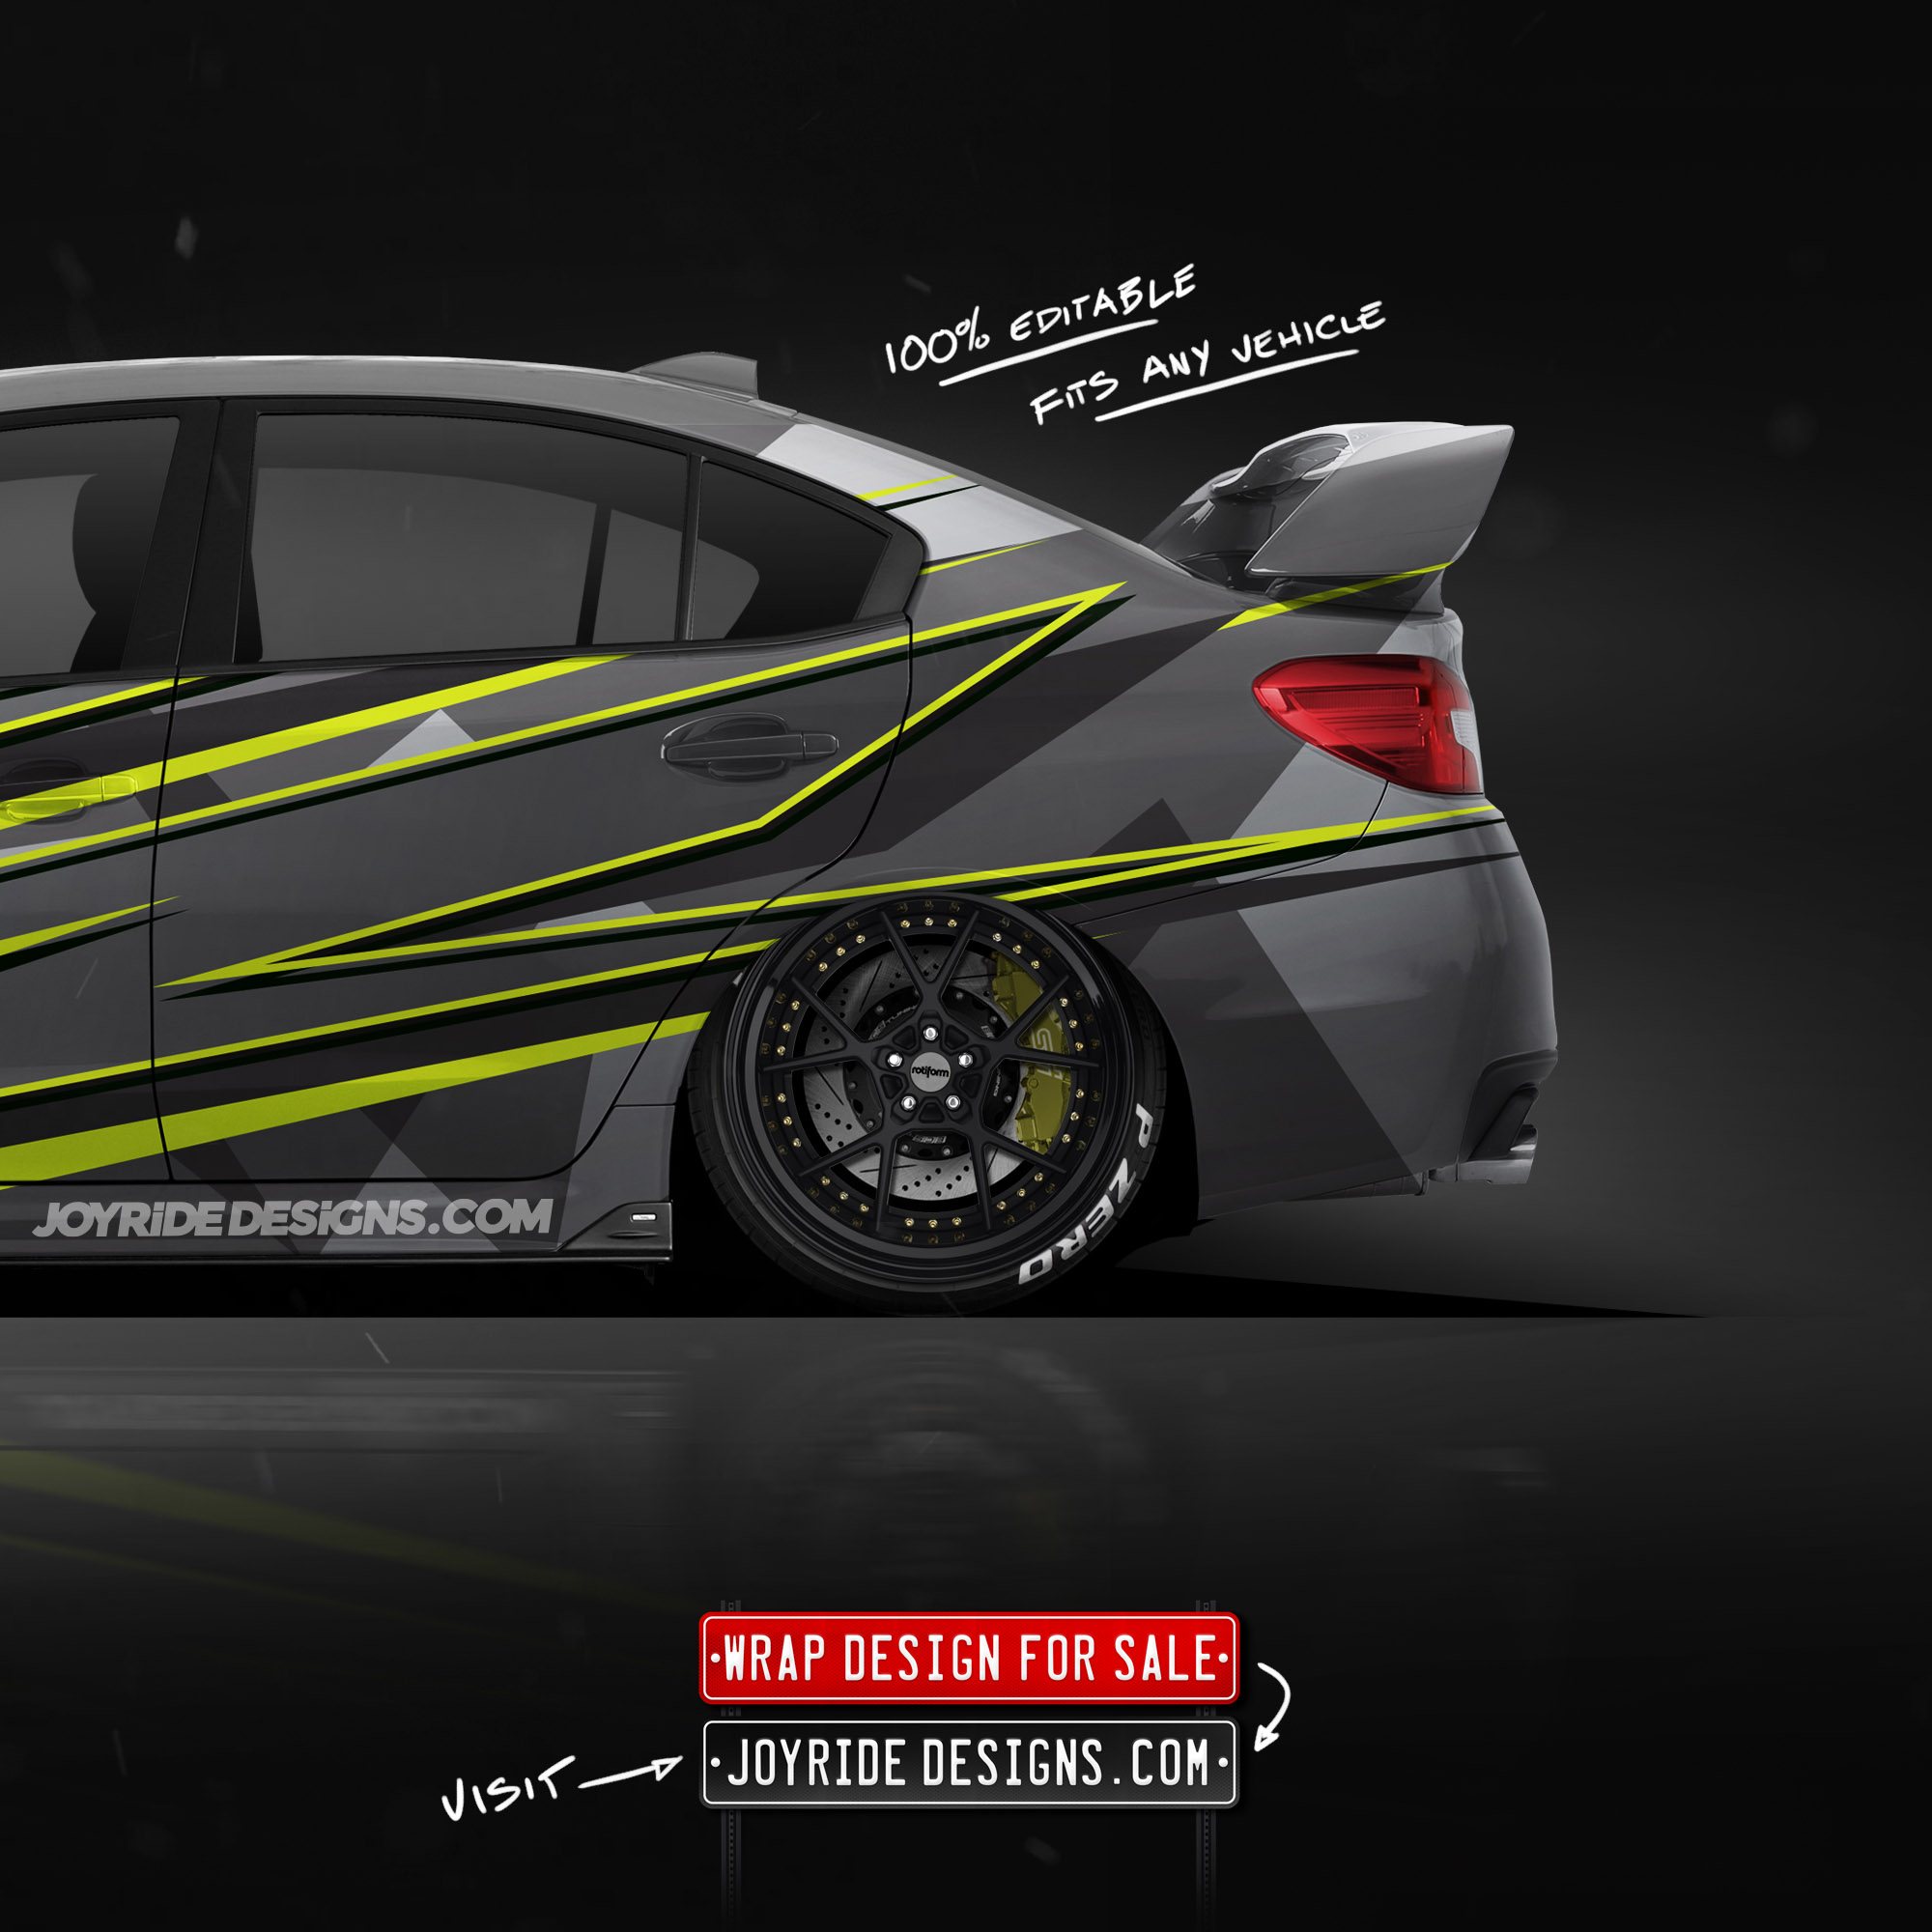 2019 SUBARU STI BACK SIDE JOYRIDE WRAP DESIGN JD1